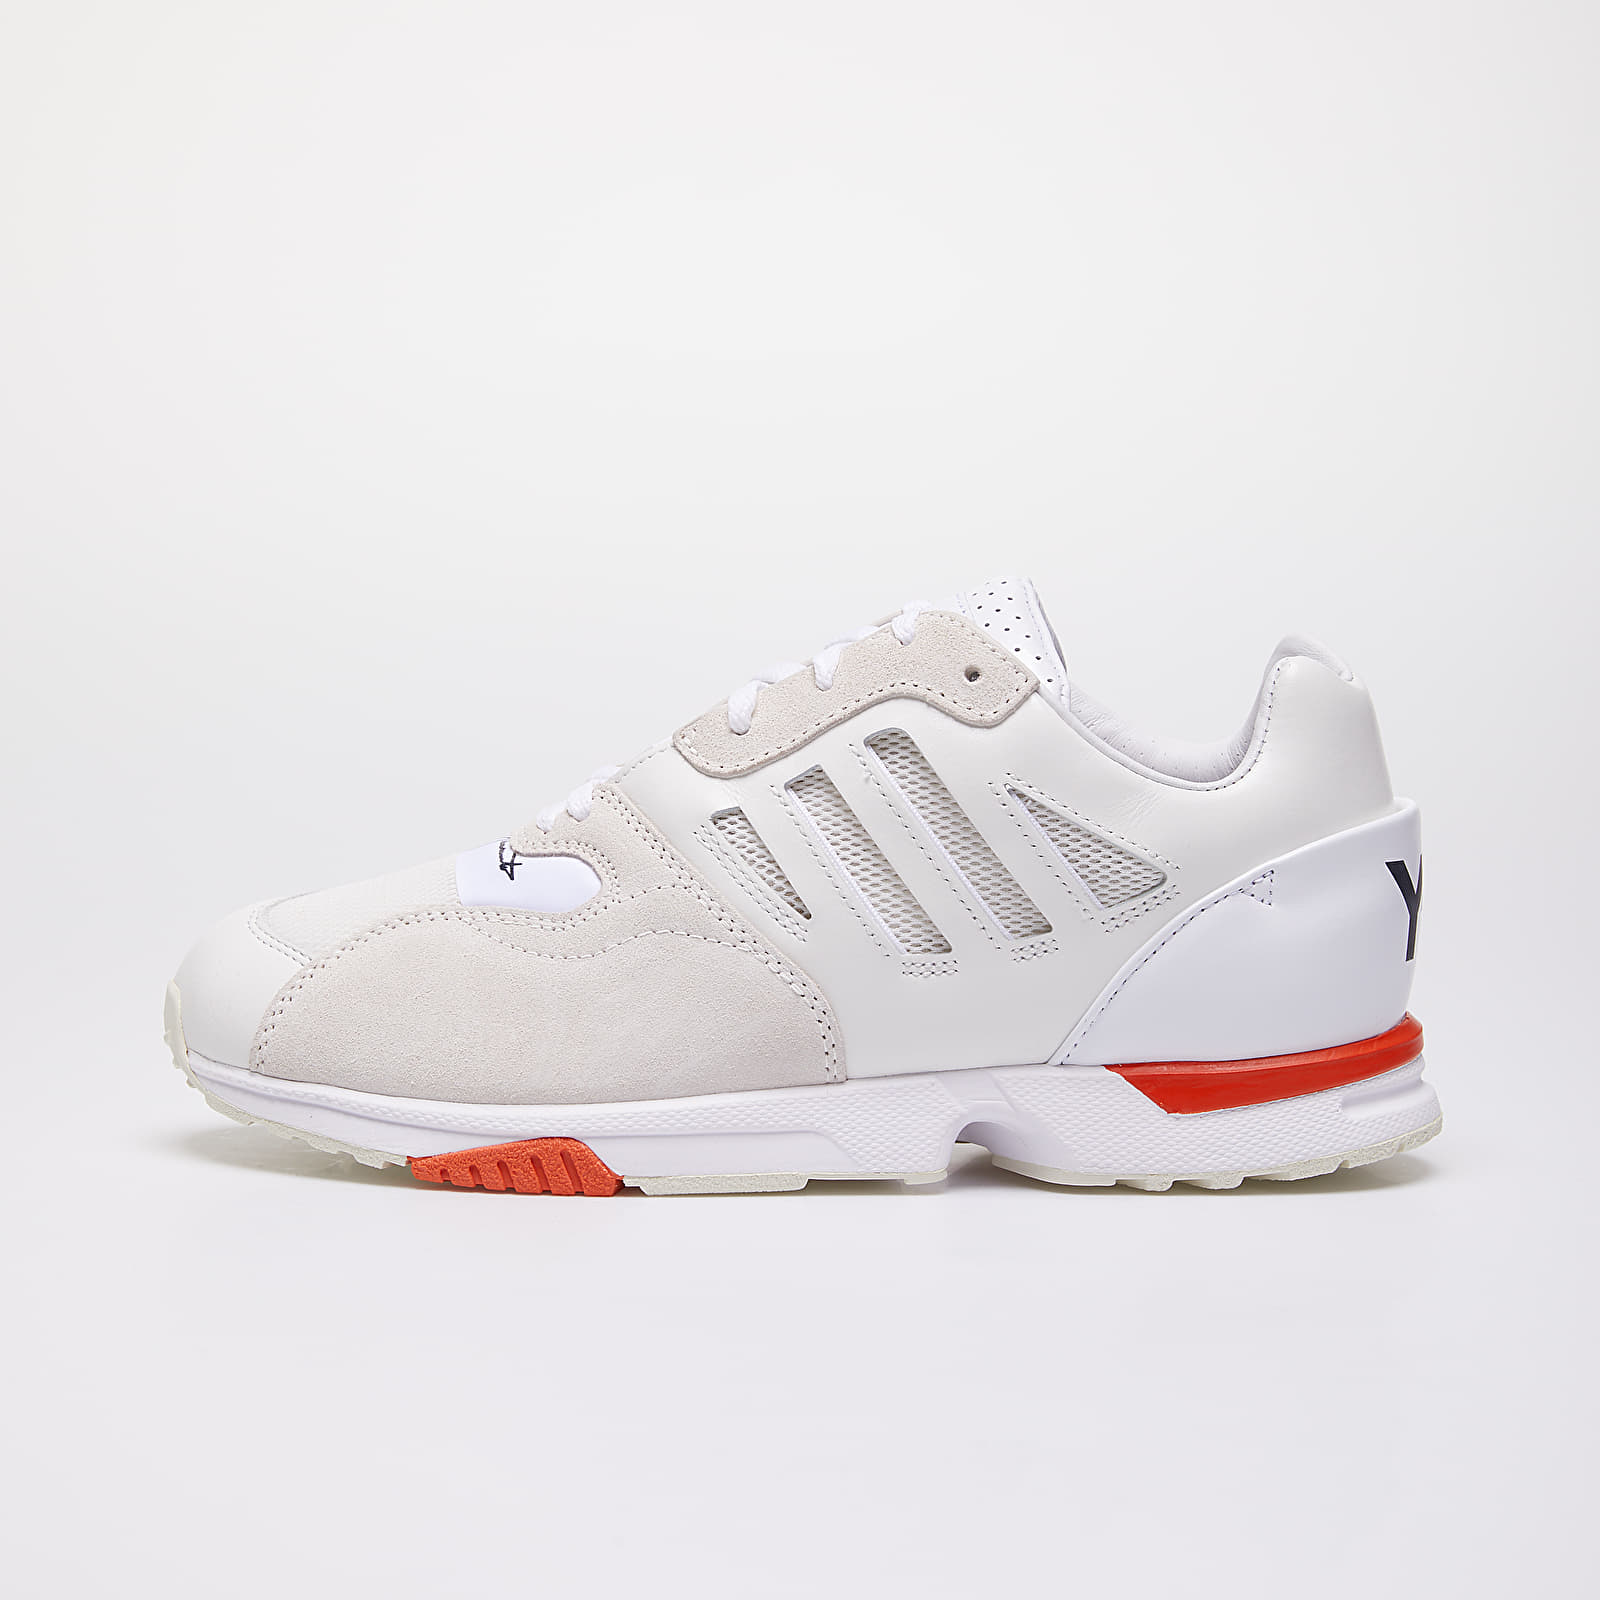 Men's shoes Y-3 ZX Run Off White/ Ftwr White/ Black-Y3